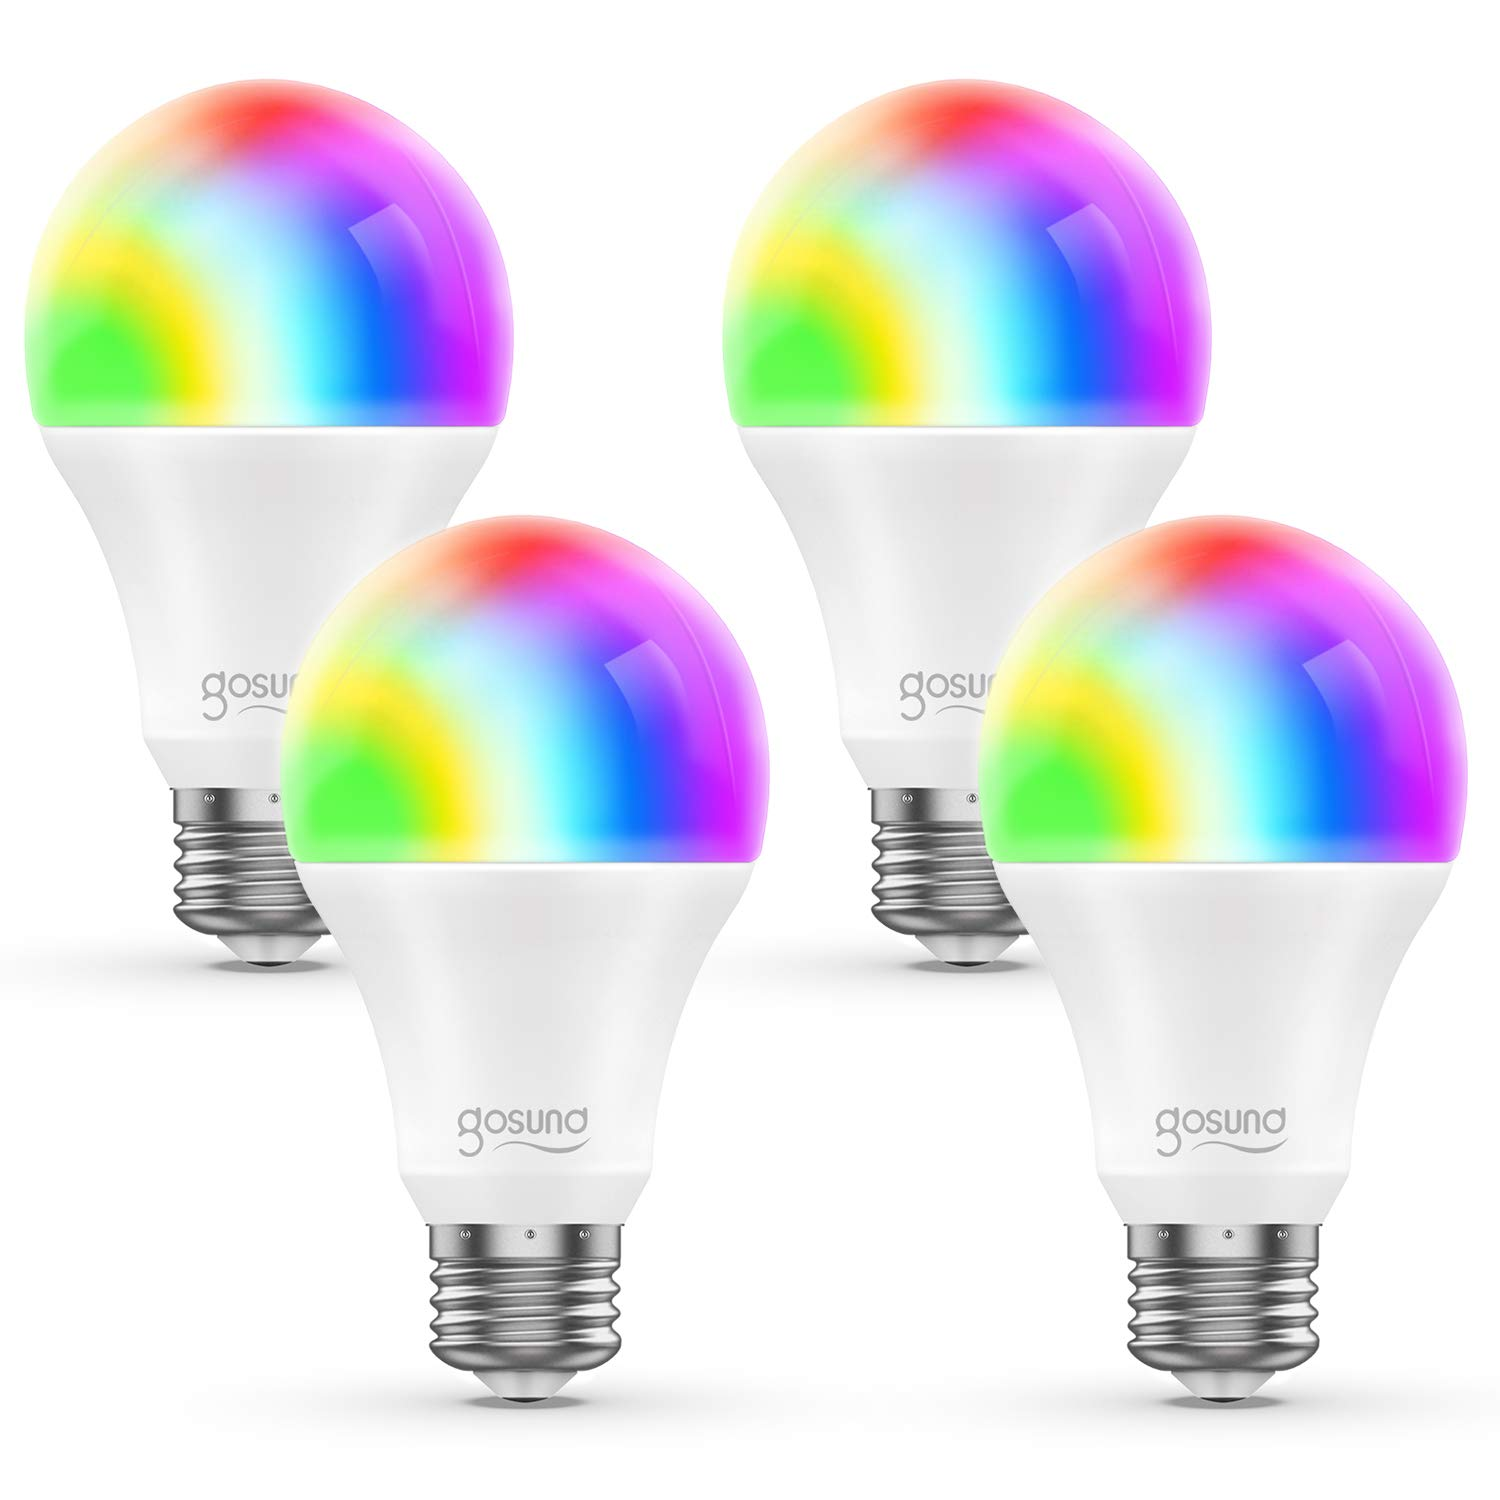 WiFi Smart Light Bulb Works with Alexa Google Home & IFTTT, Gosund A19 E26 LED Smart Bulb RGB Color Changing Dimmable, No Hub Required, Soft White (4 Pack)